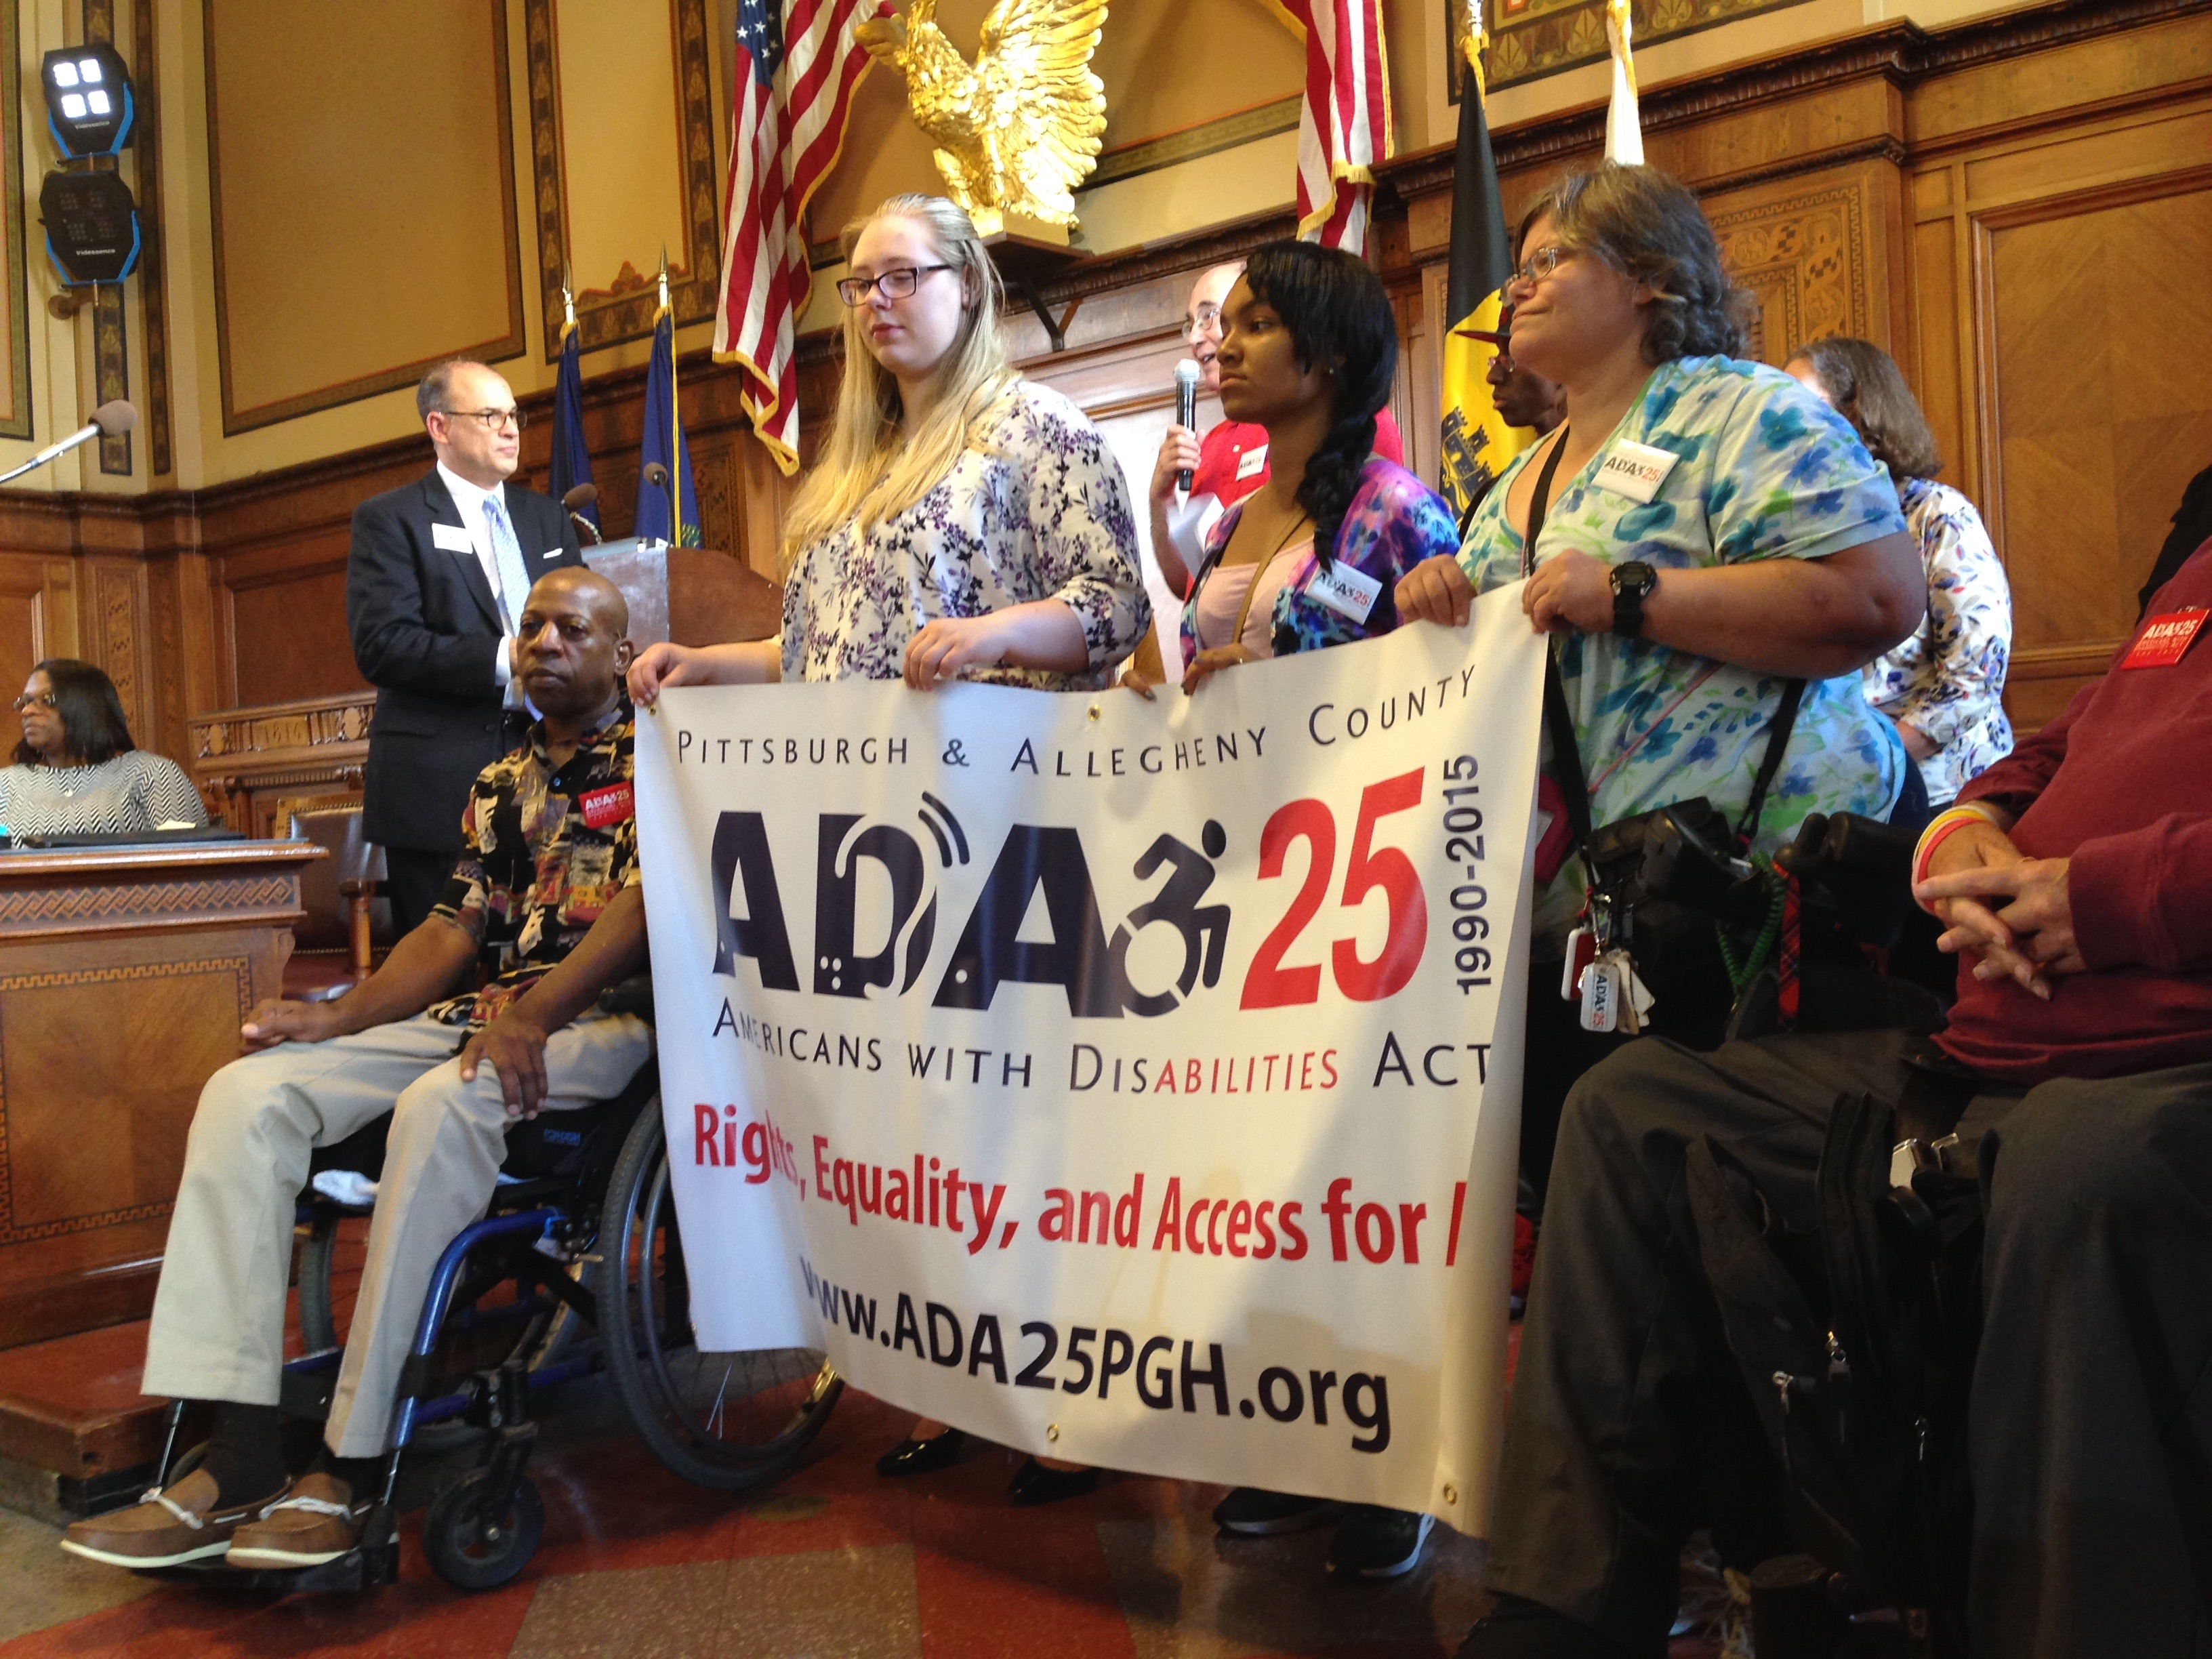 Group of people at a Pittsburgh City Council meeting hold a large banner commemorating the 25th anniversary of the ADA